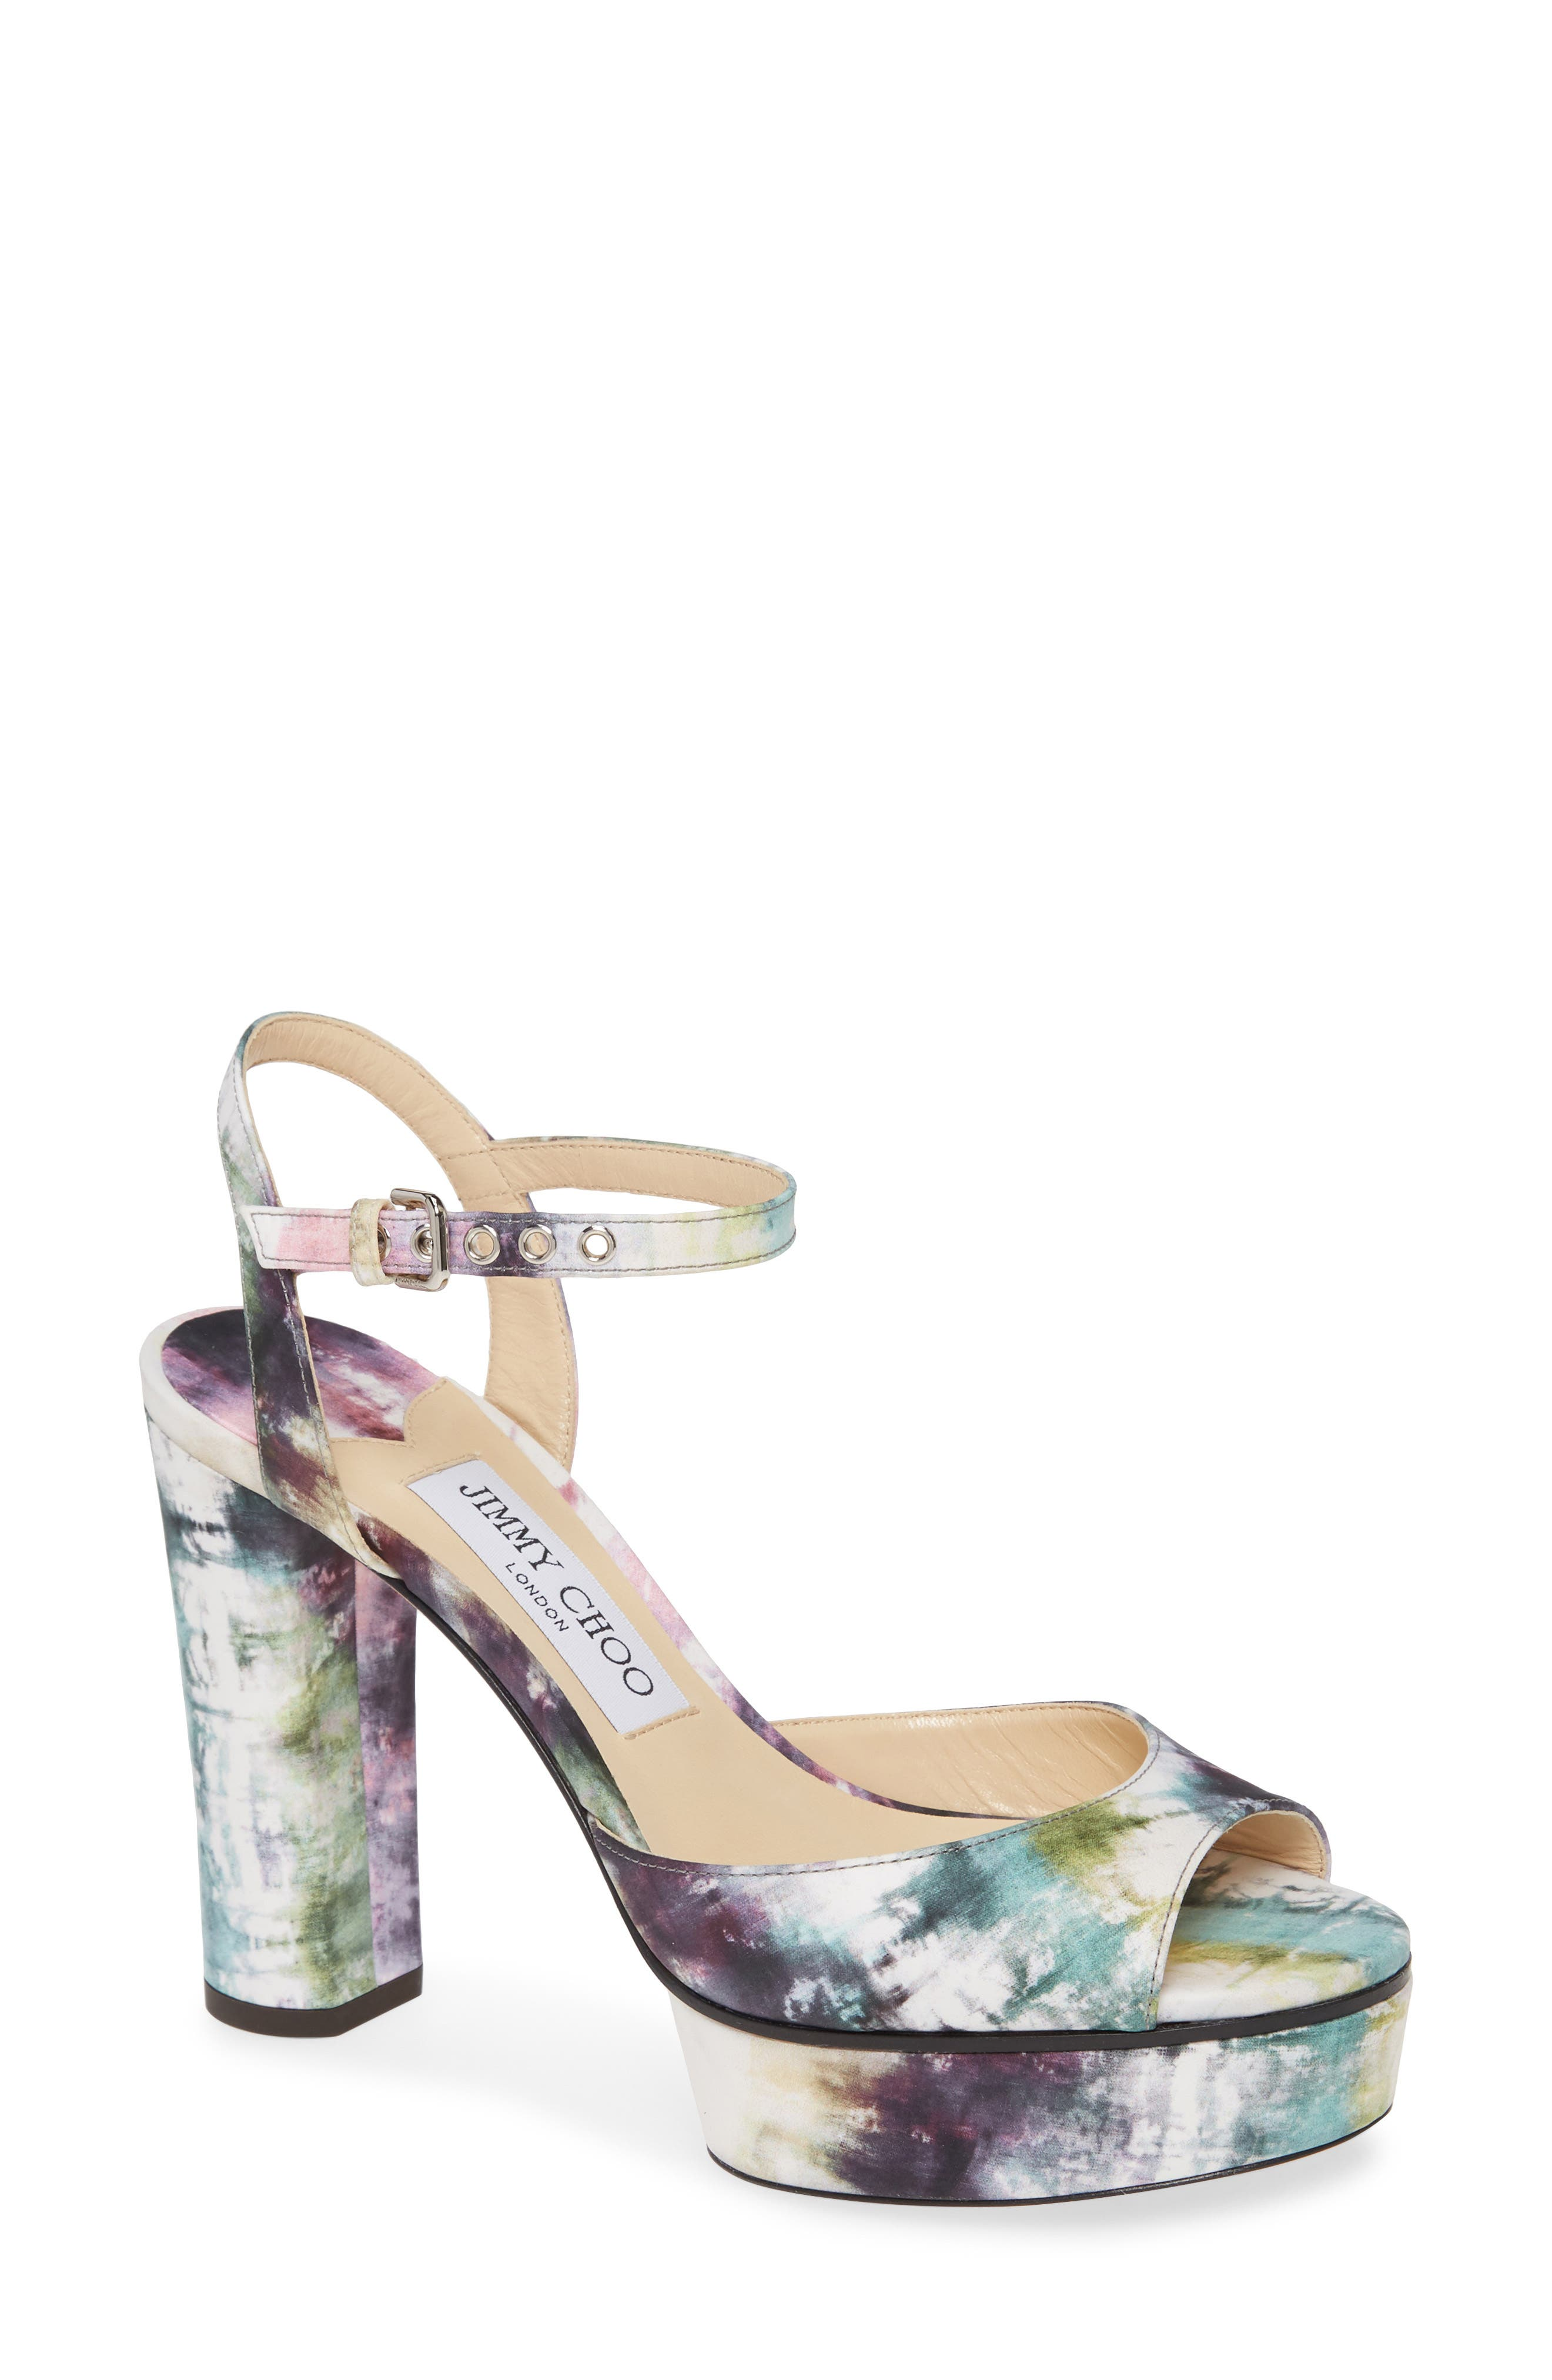 Eye-catching glamour and dynamic retro style merge in a lofty platform sandal in a dreamy watercolor print. Style Name: Jimmy Choo Peachy Tie Dye Platform Sandal (Women). Style Number: 5943566. Available in stores.